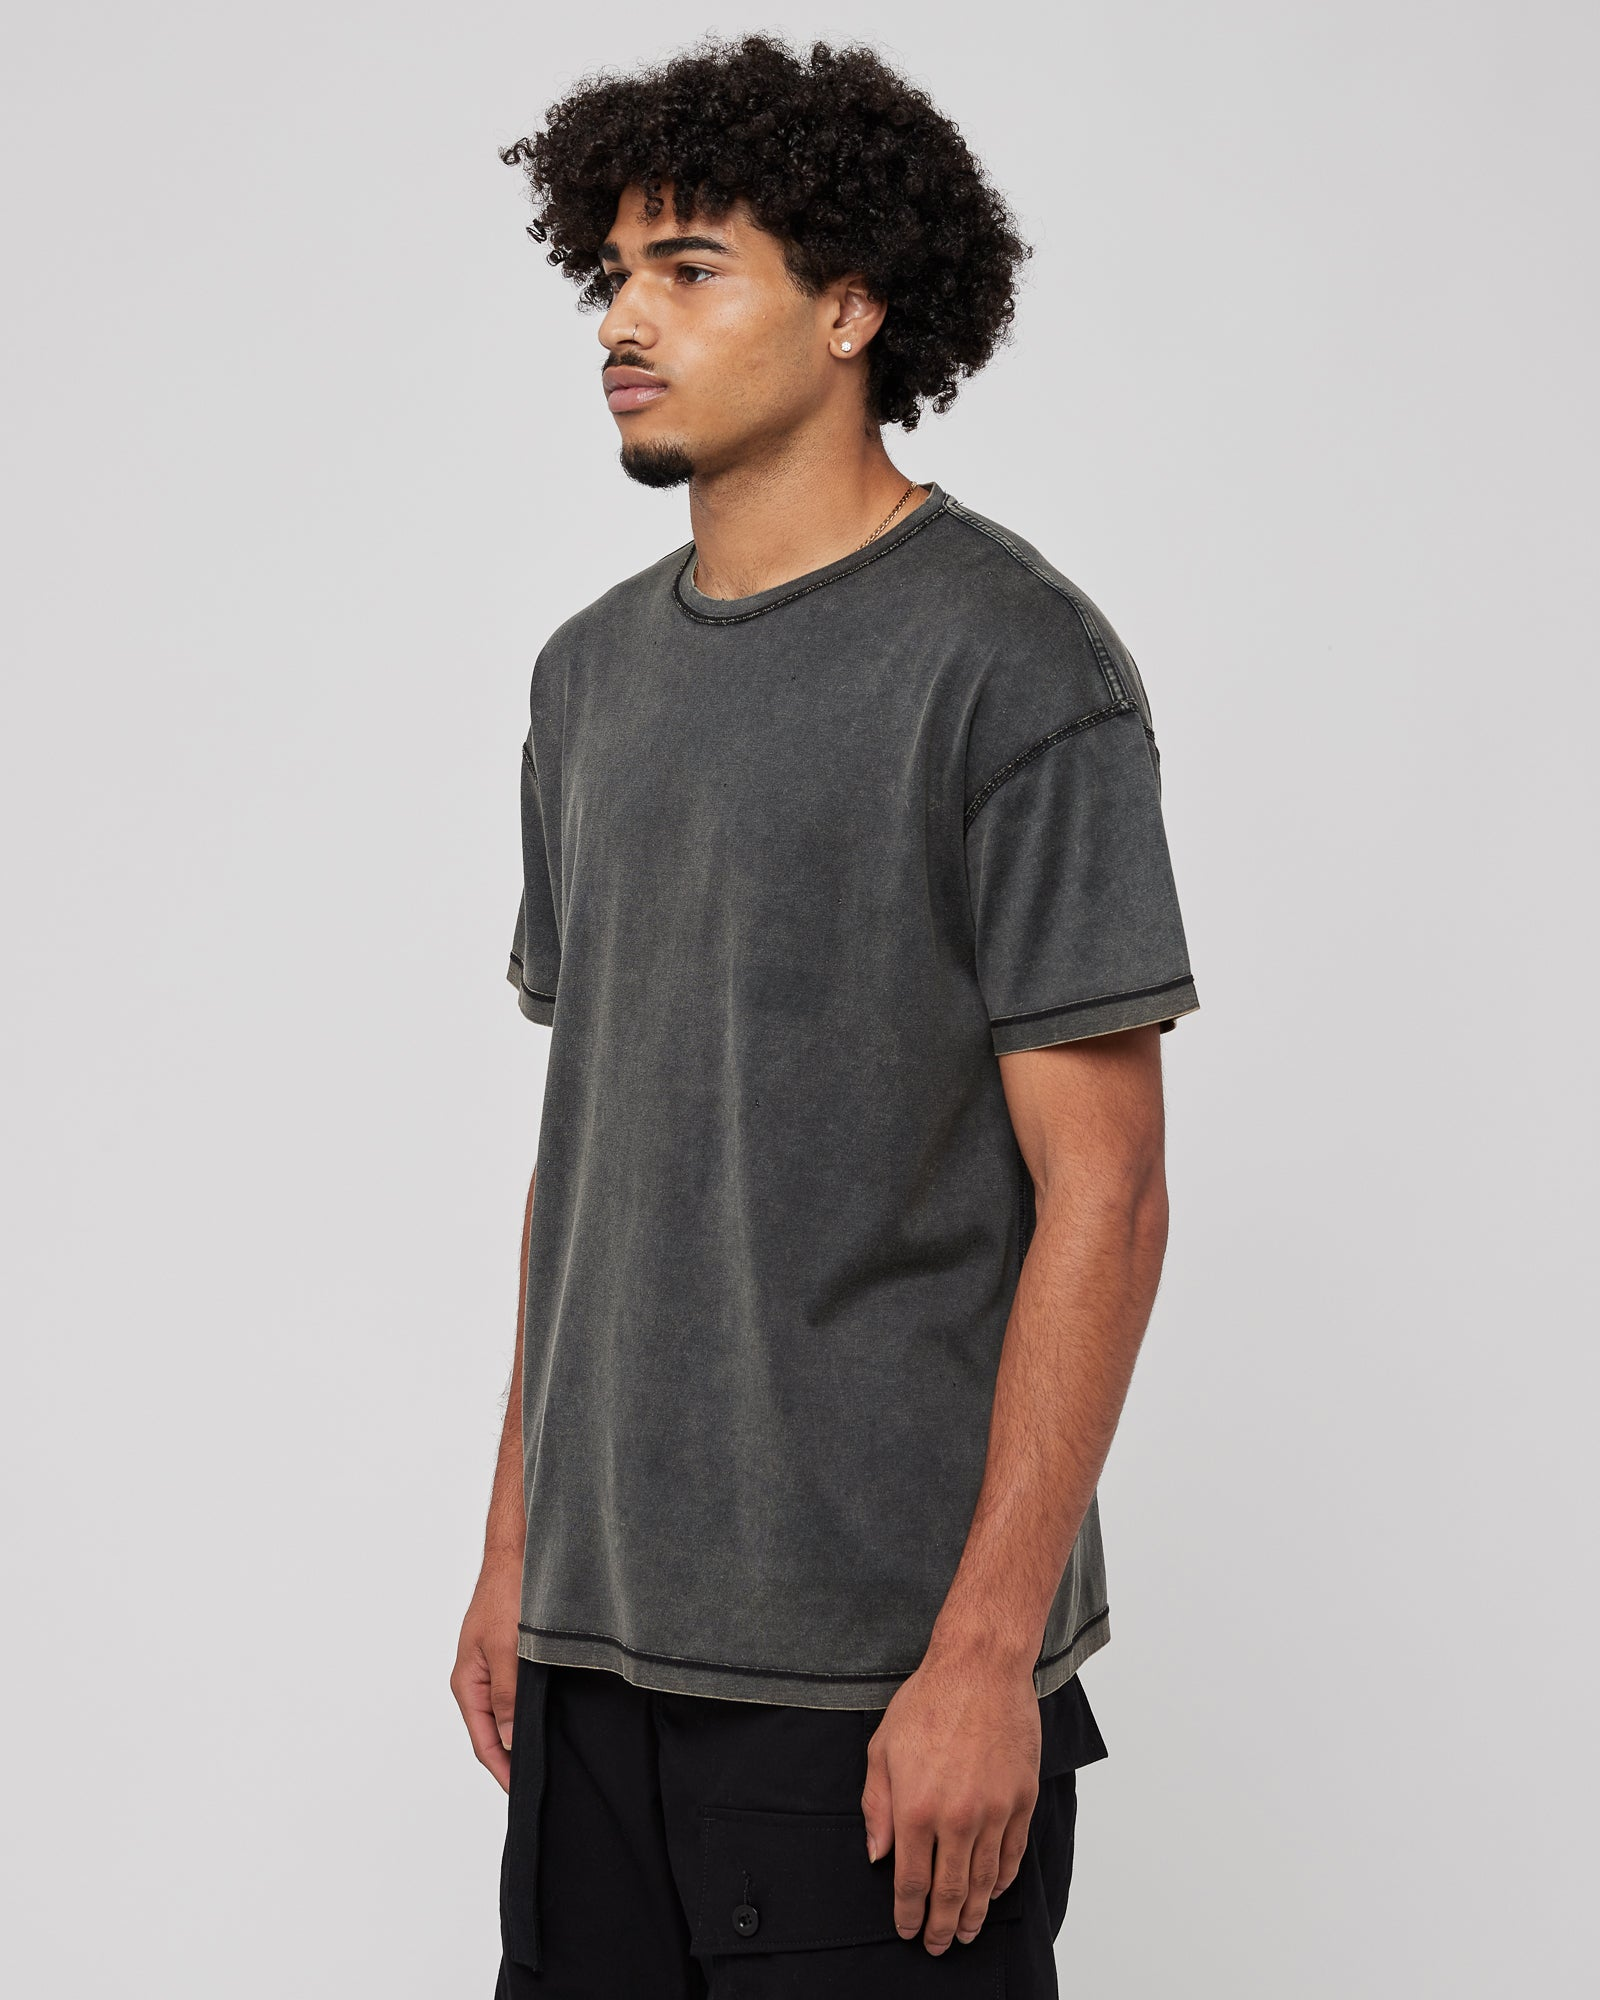 Acid Washed Inside Out T-Shirt in Black